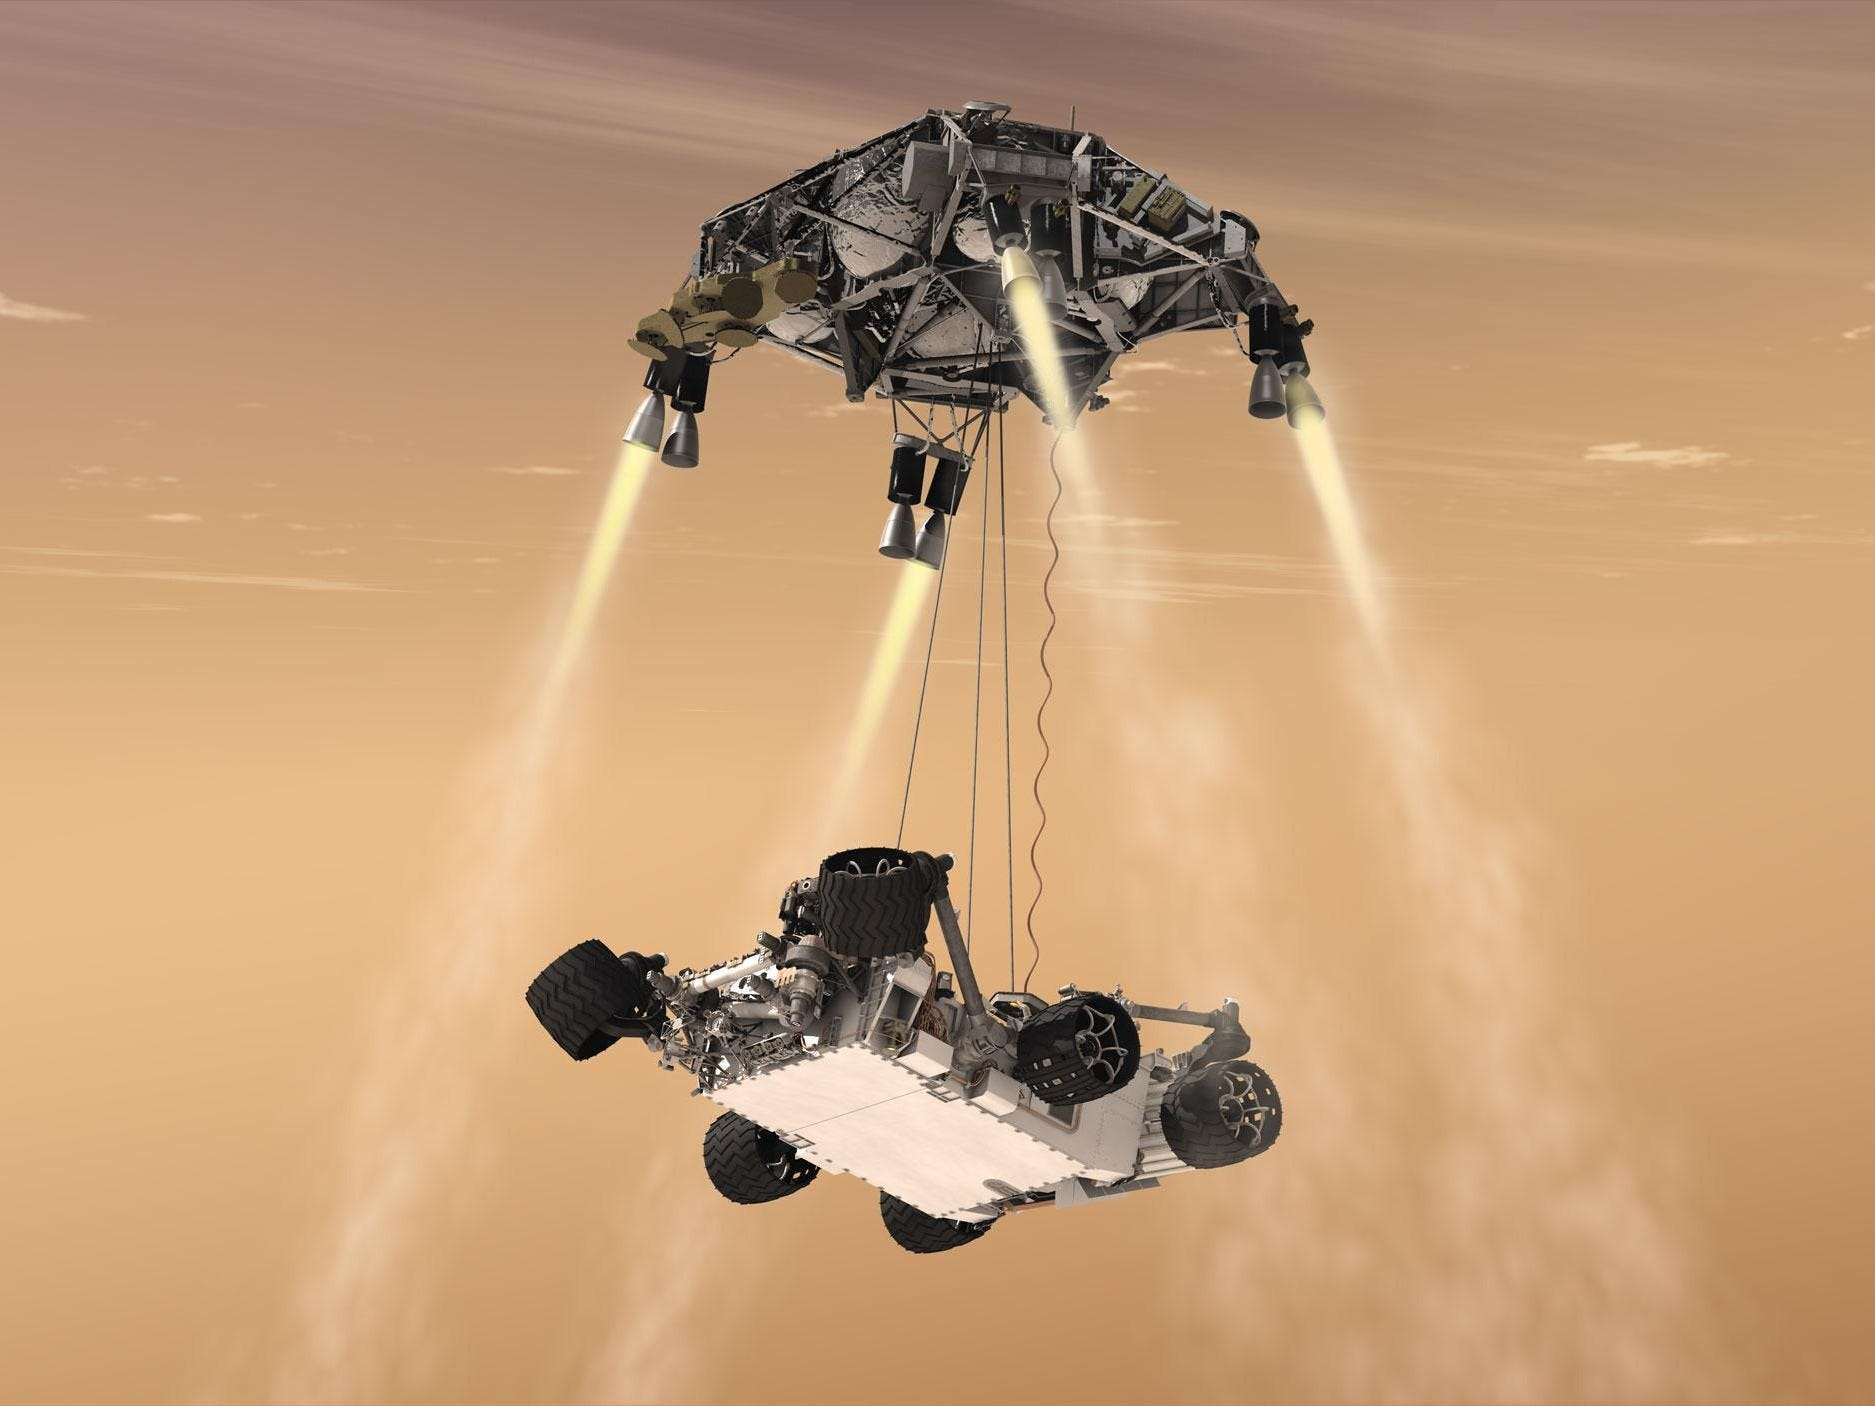 NASA's Perseverance rover is about to attempt a supersonic plunge to Mars, complete with a jetpack landing